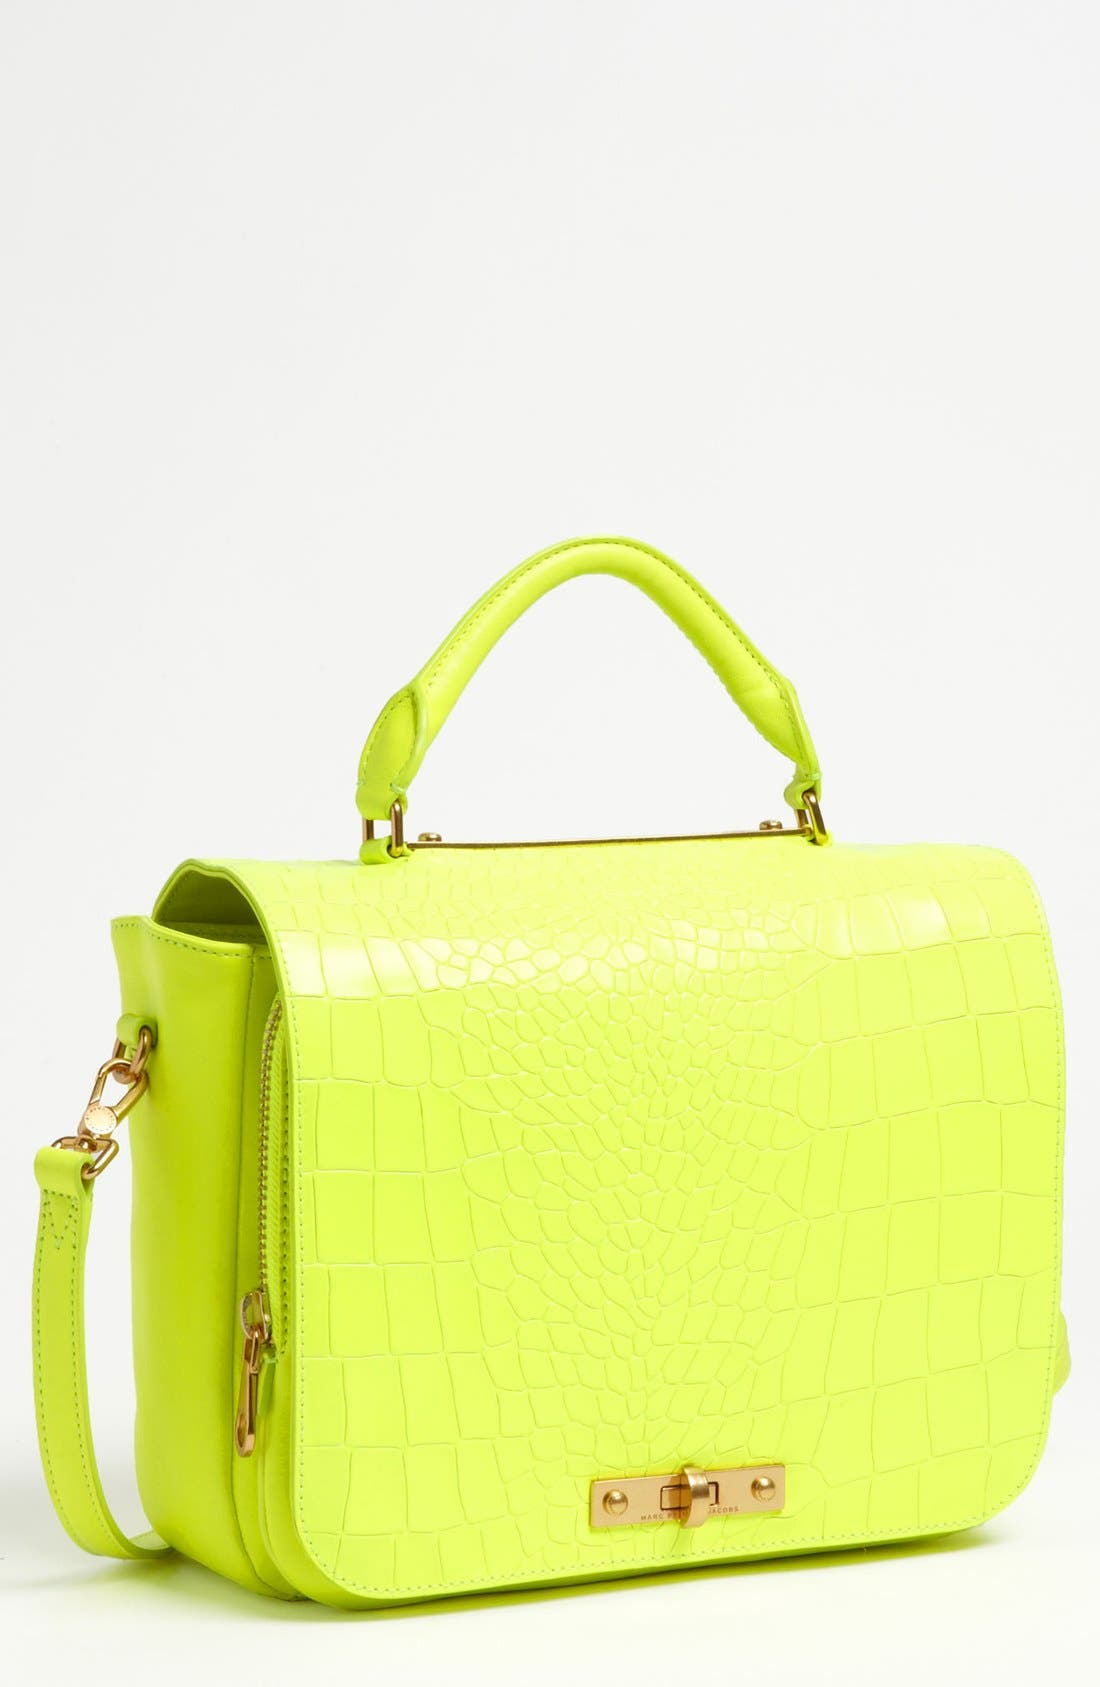 Main Image - MARC BY MARC JACOBS 'Goodbye Columbus' Croc Embossed Leather Satchel